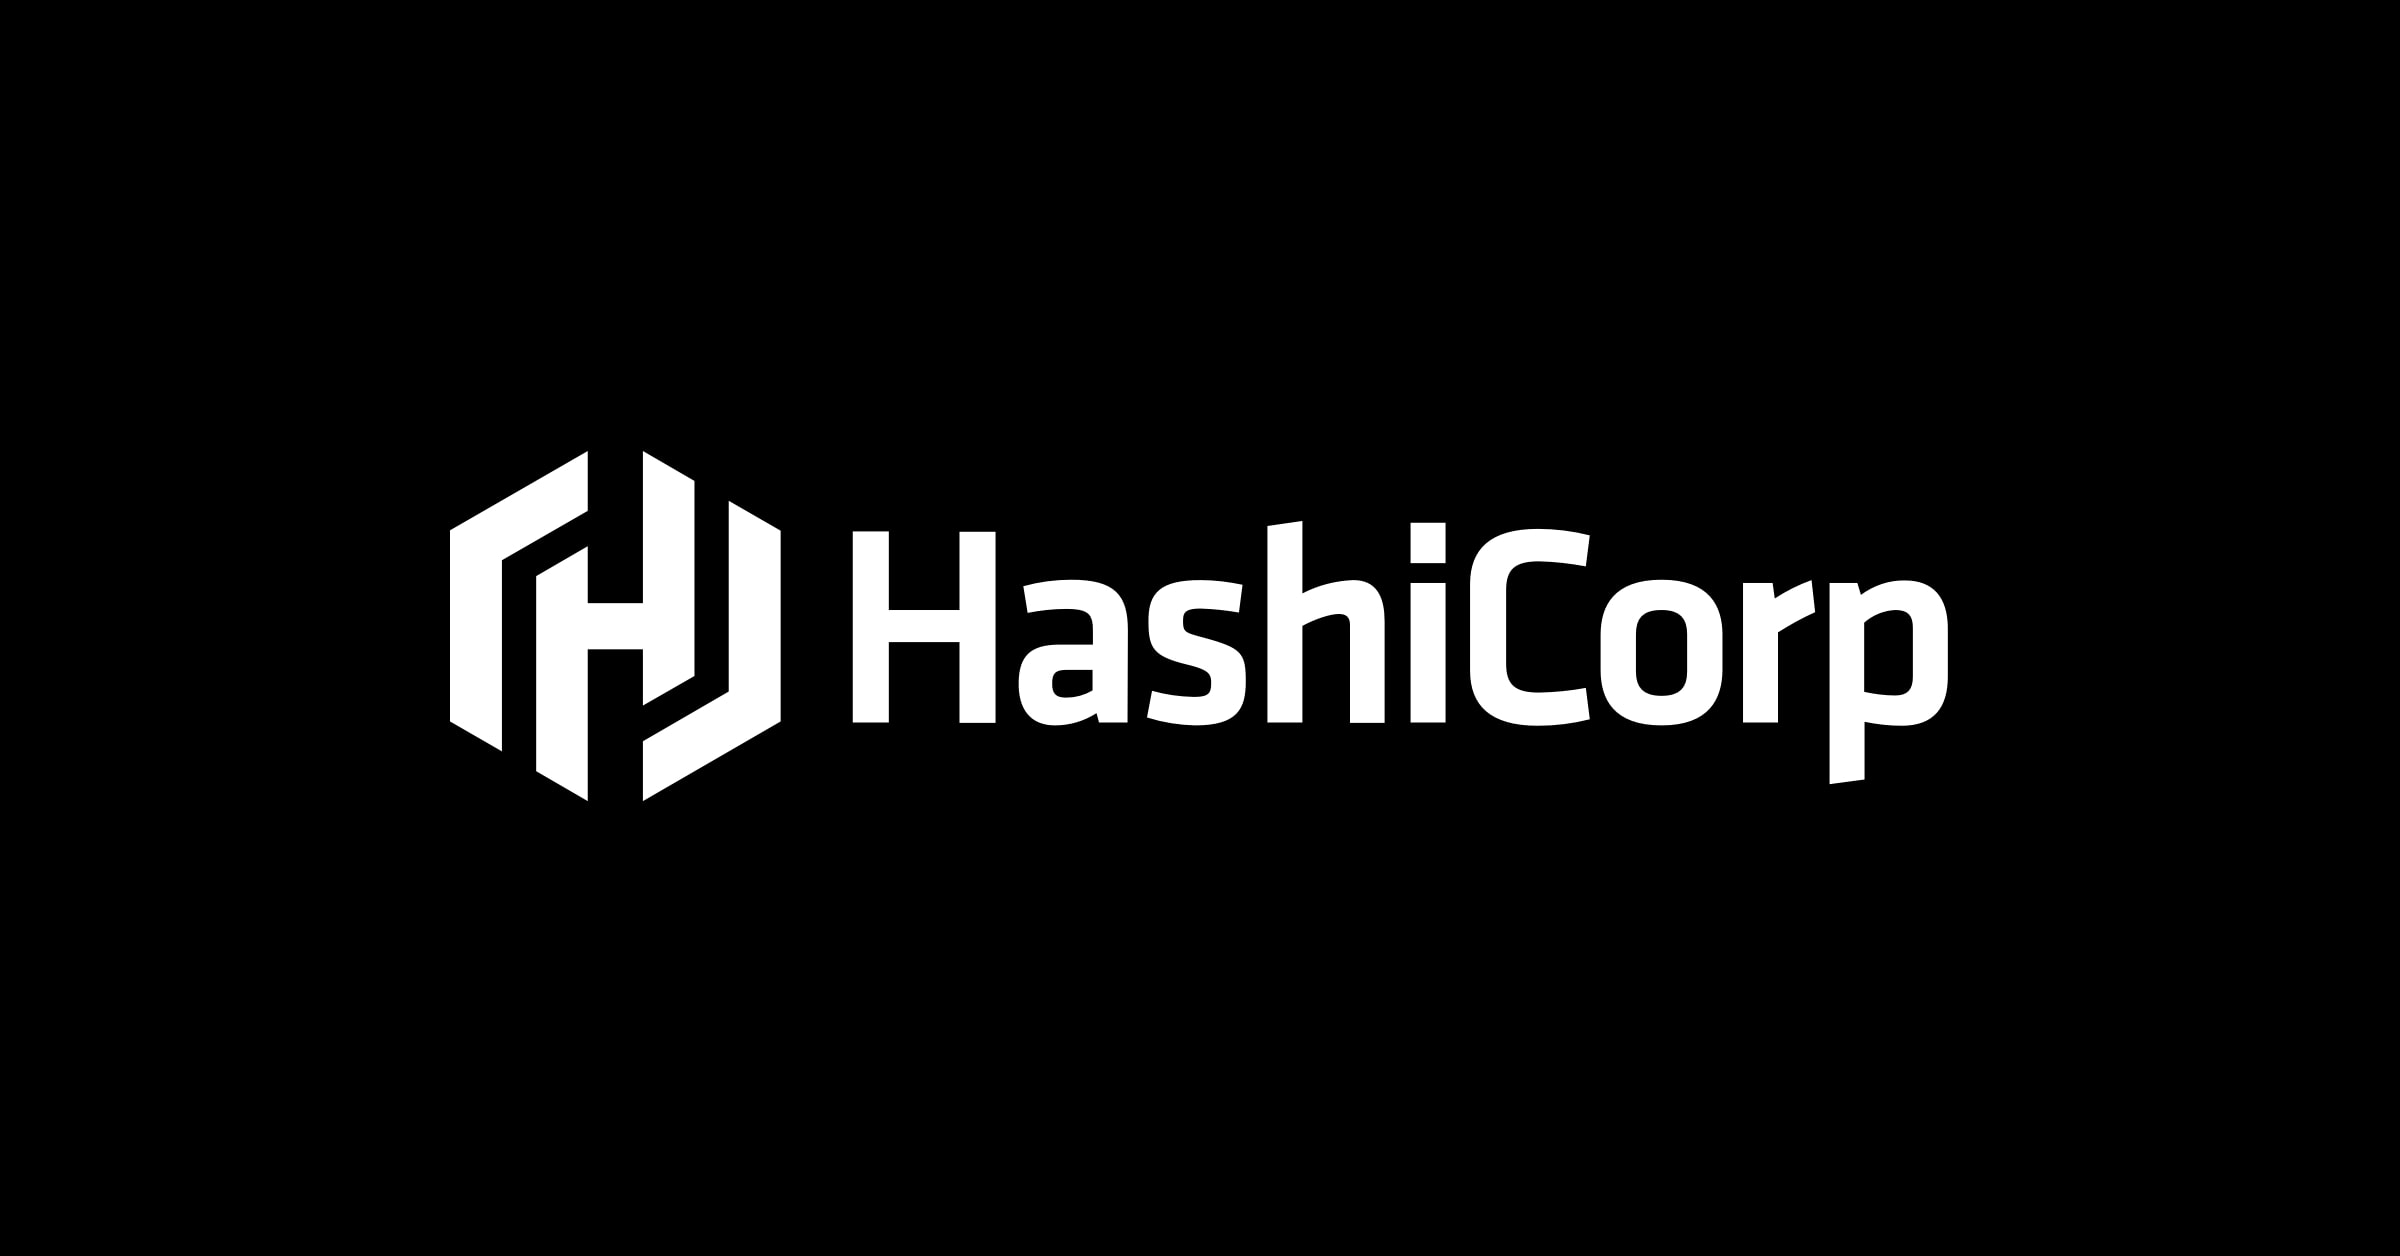 Hashicorp brand for Packer hashicorp